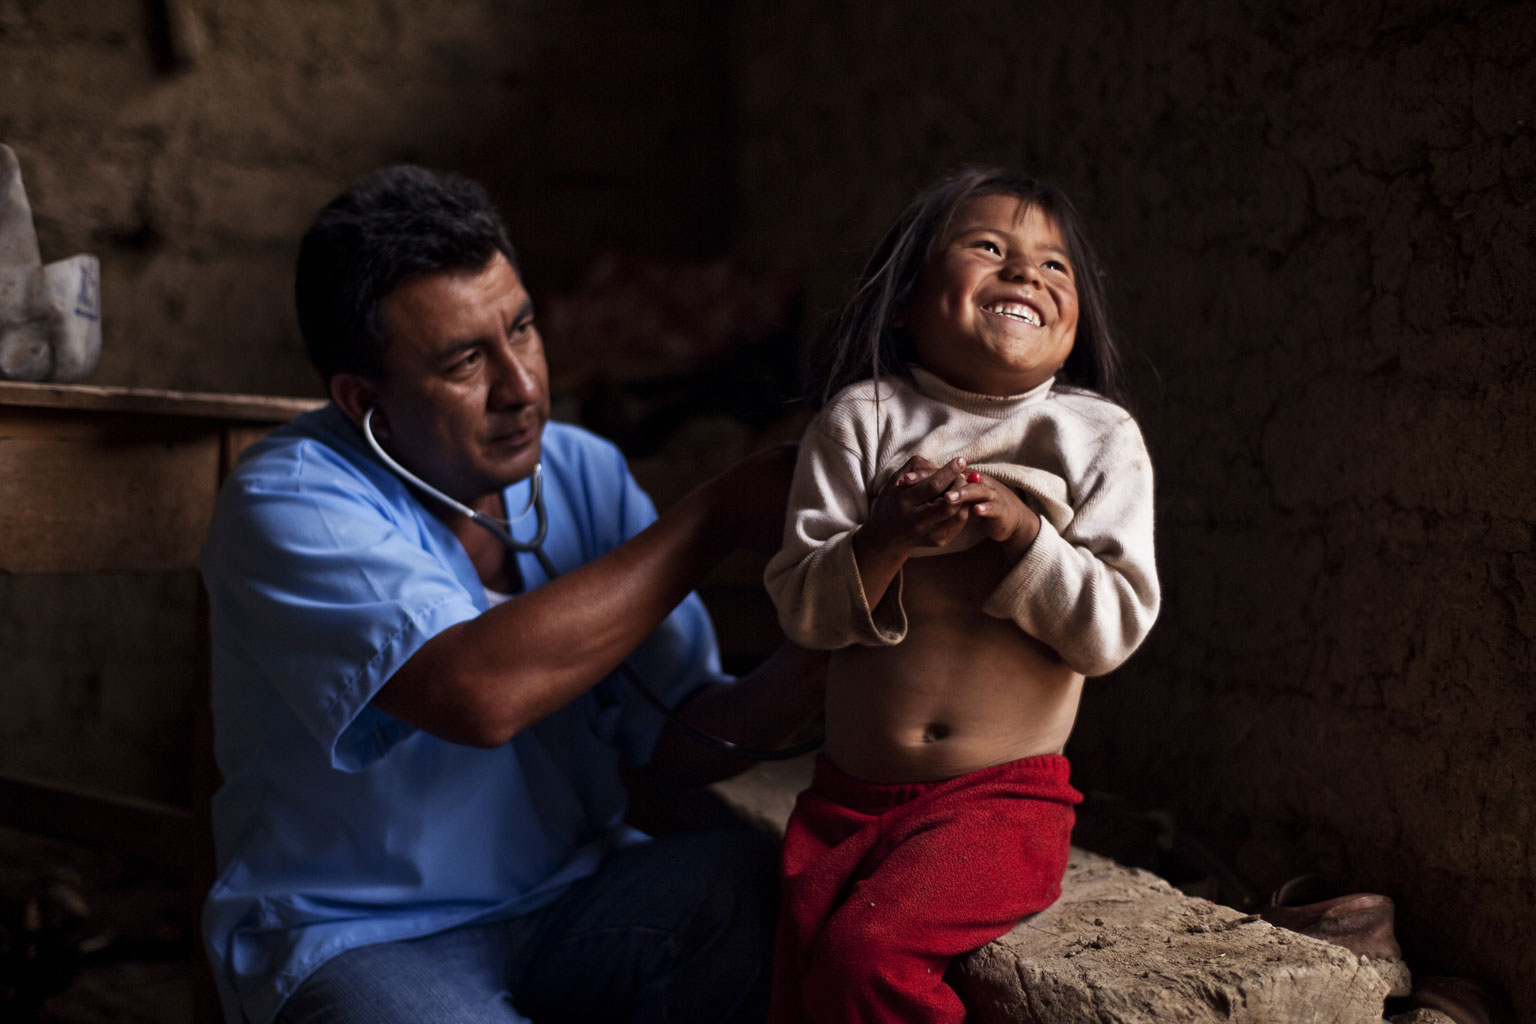 Doctor Pablo Ramirez Pasache. Rural doctor. Querco, Huancavelica. Photographs for the Swiss Cooperation Office in Peru.